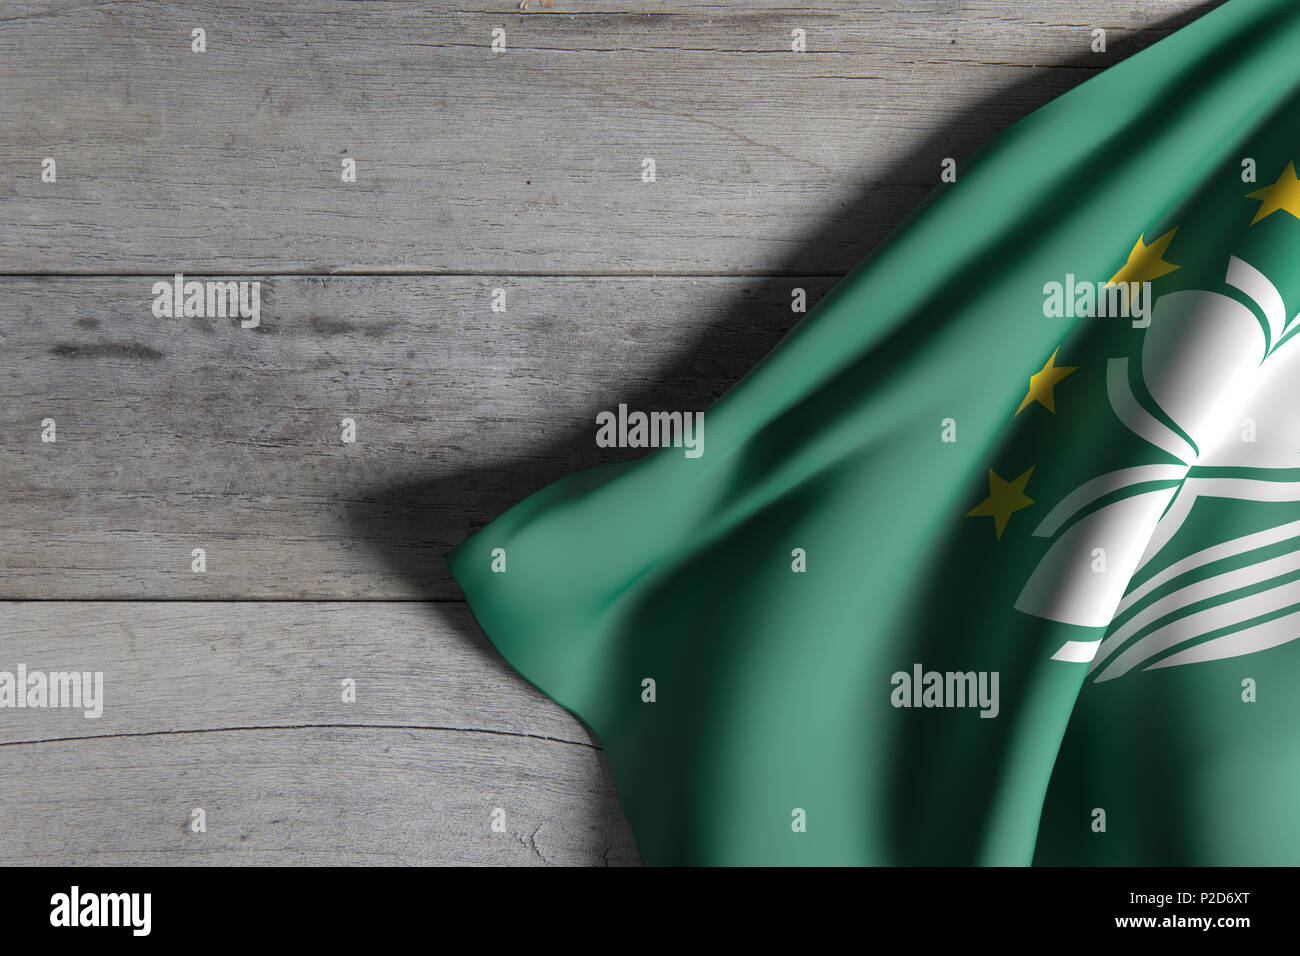 3d rendering of Macau flag over a wooden surface - Stock Image